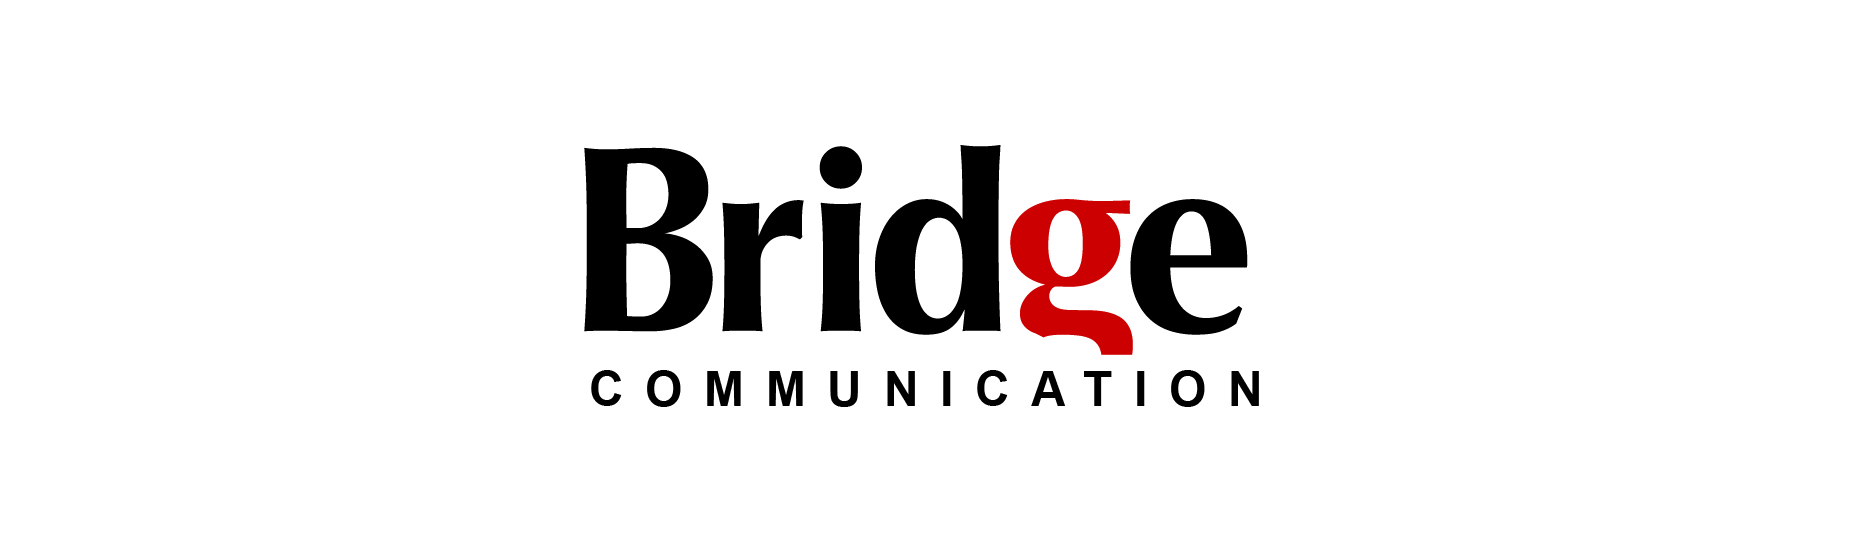 Bridge Communication l agence de communication lyon paris